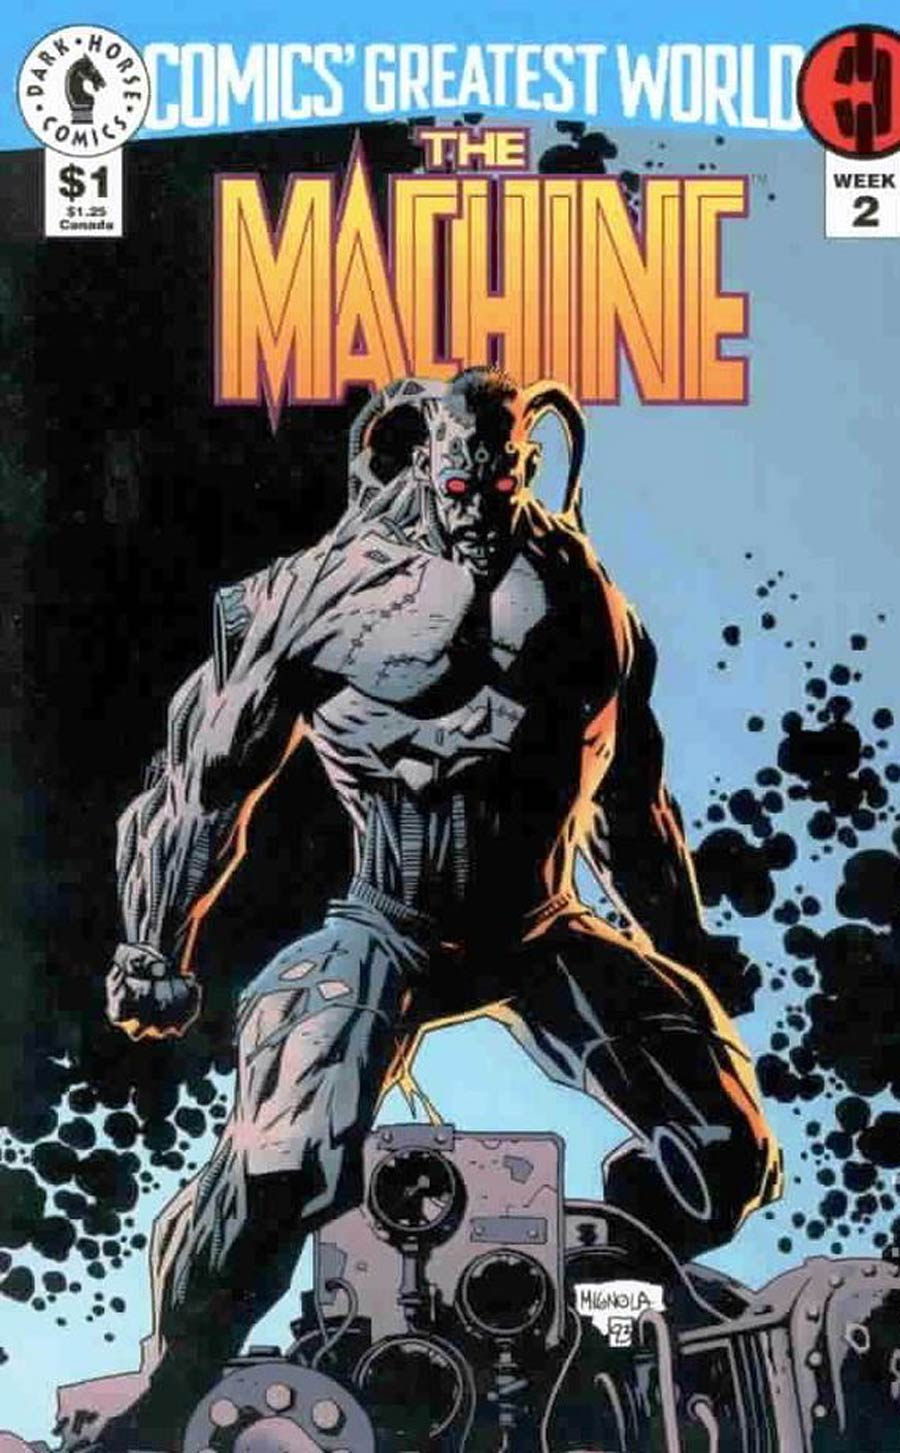 Comics Greatest World Steel Harbor Week #2 The Machine